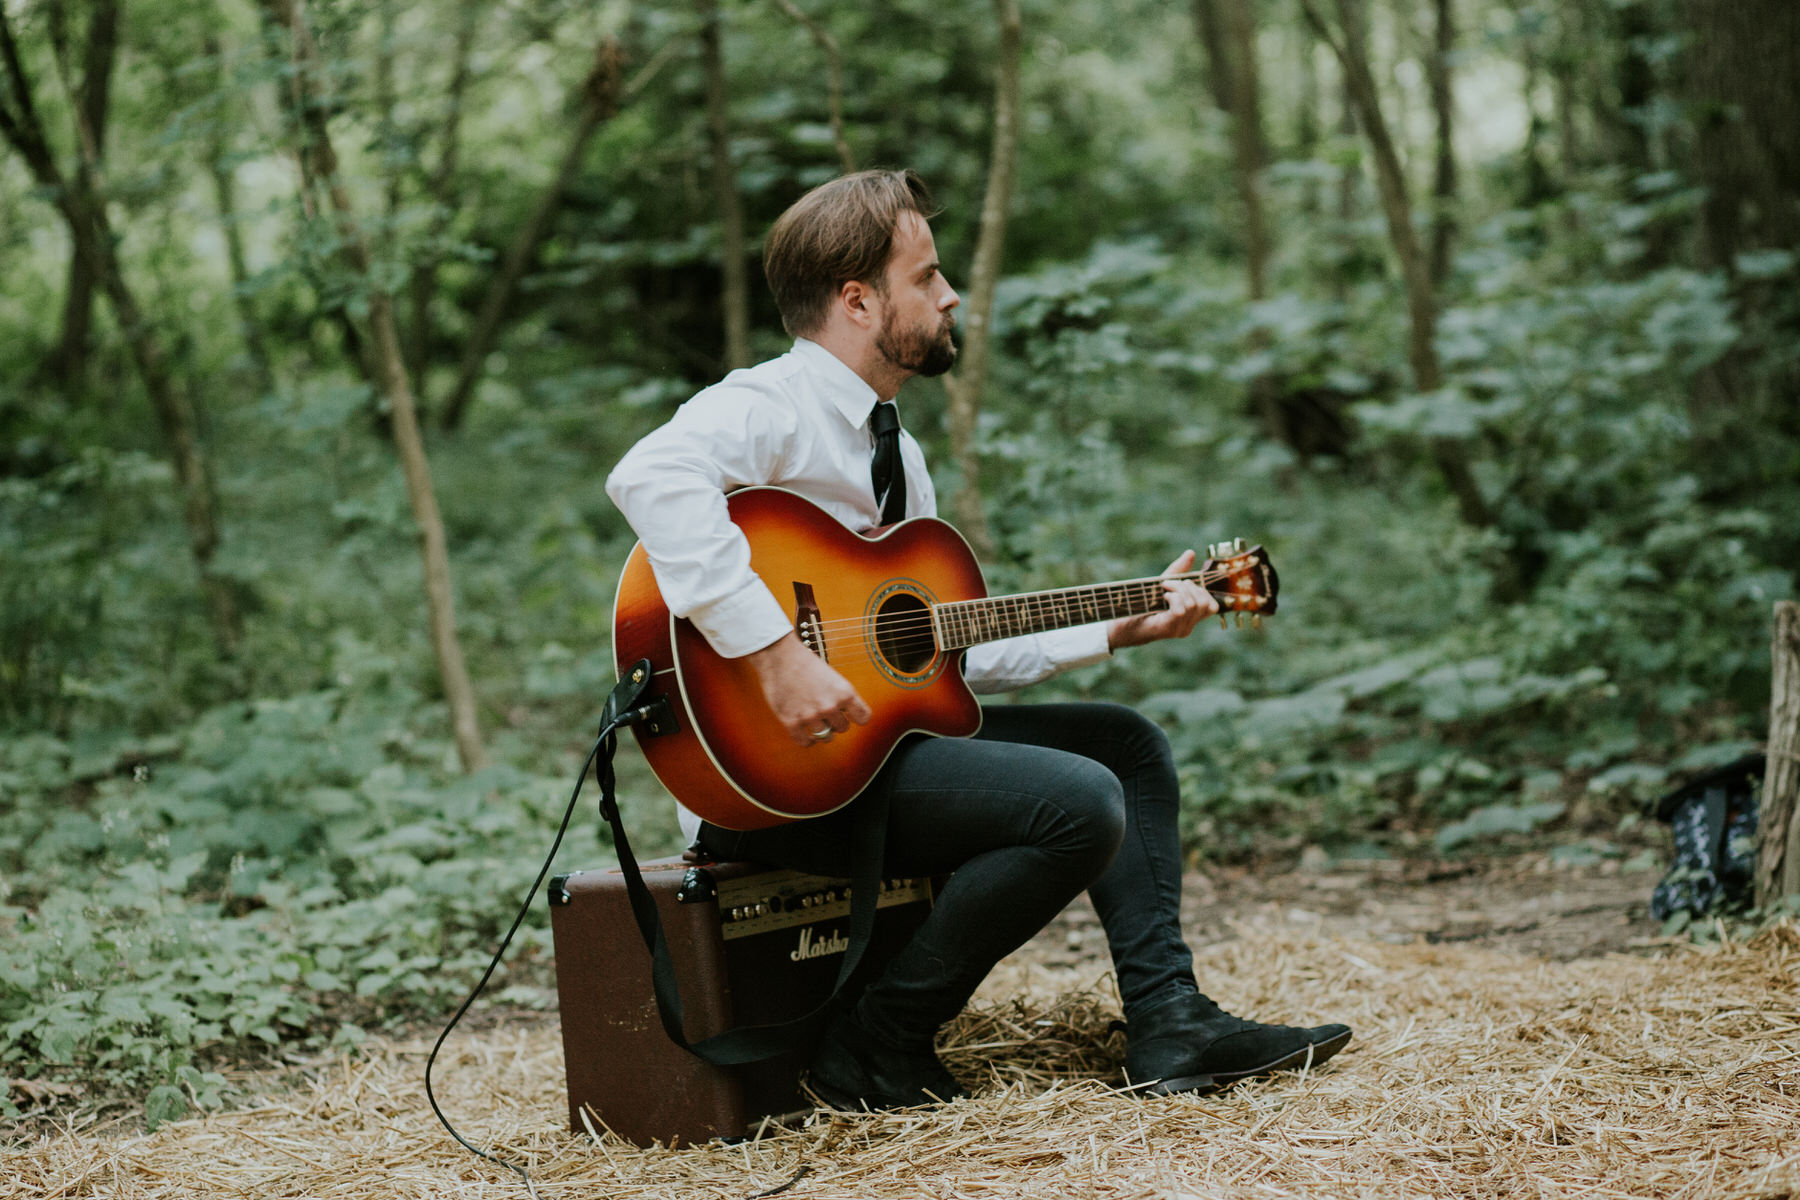 40 acoustic guitar player Paper Mill woodland wedding Kent.jpg